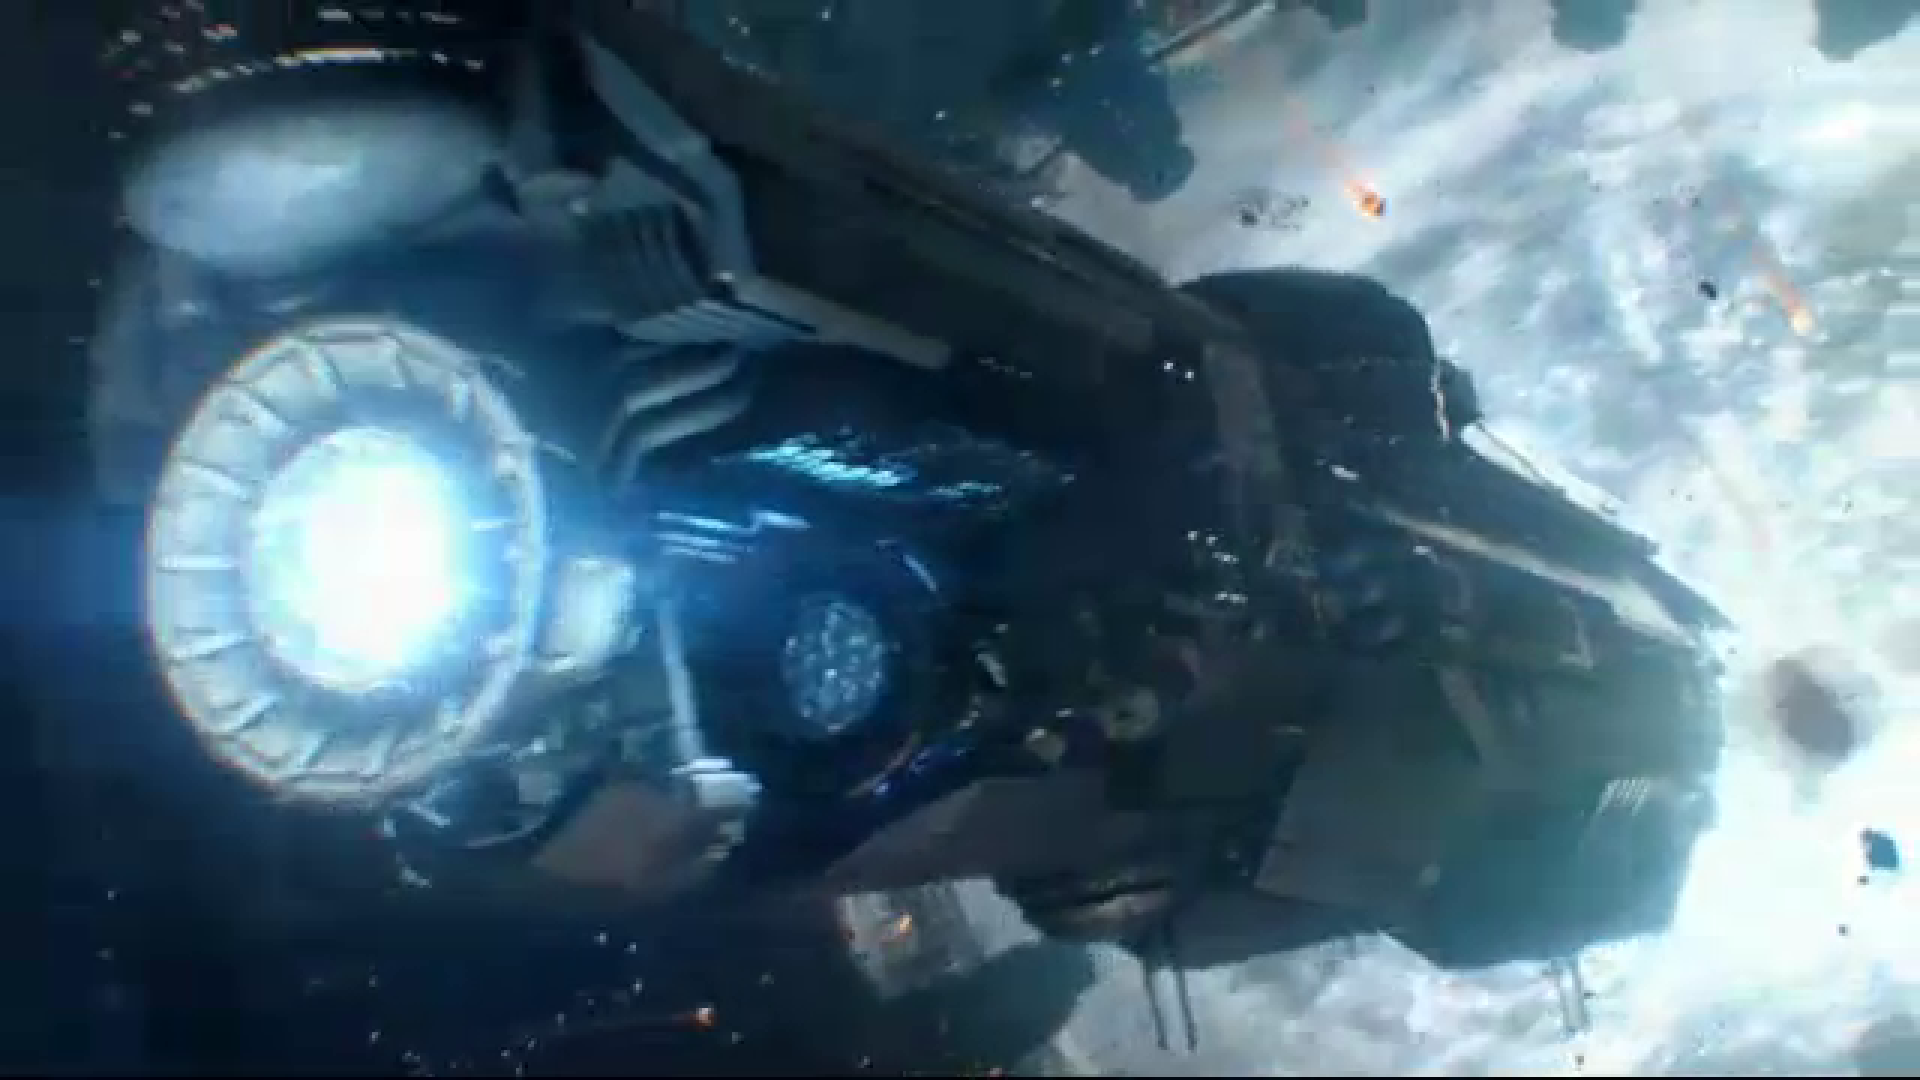 E3 Halo 4 Trailer Discussion And Screenshots Of Live Action